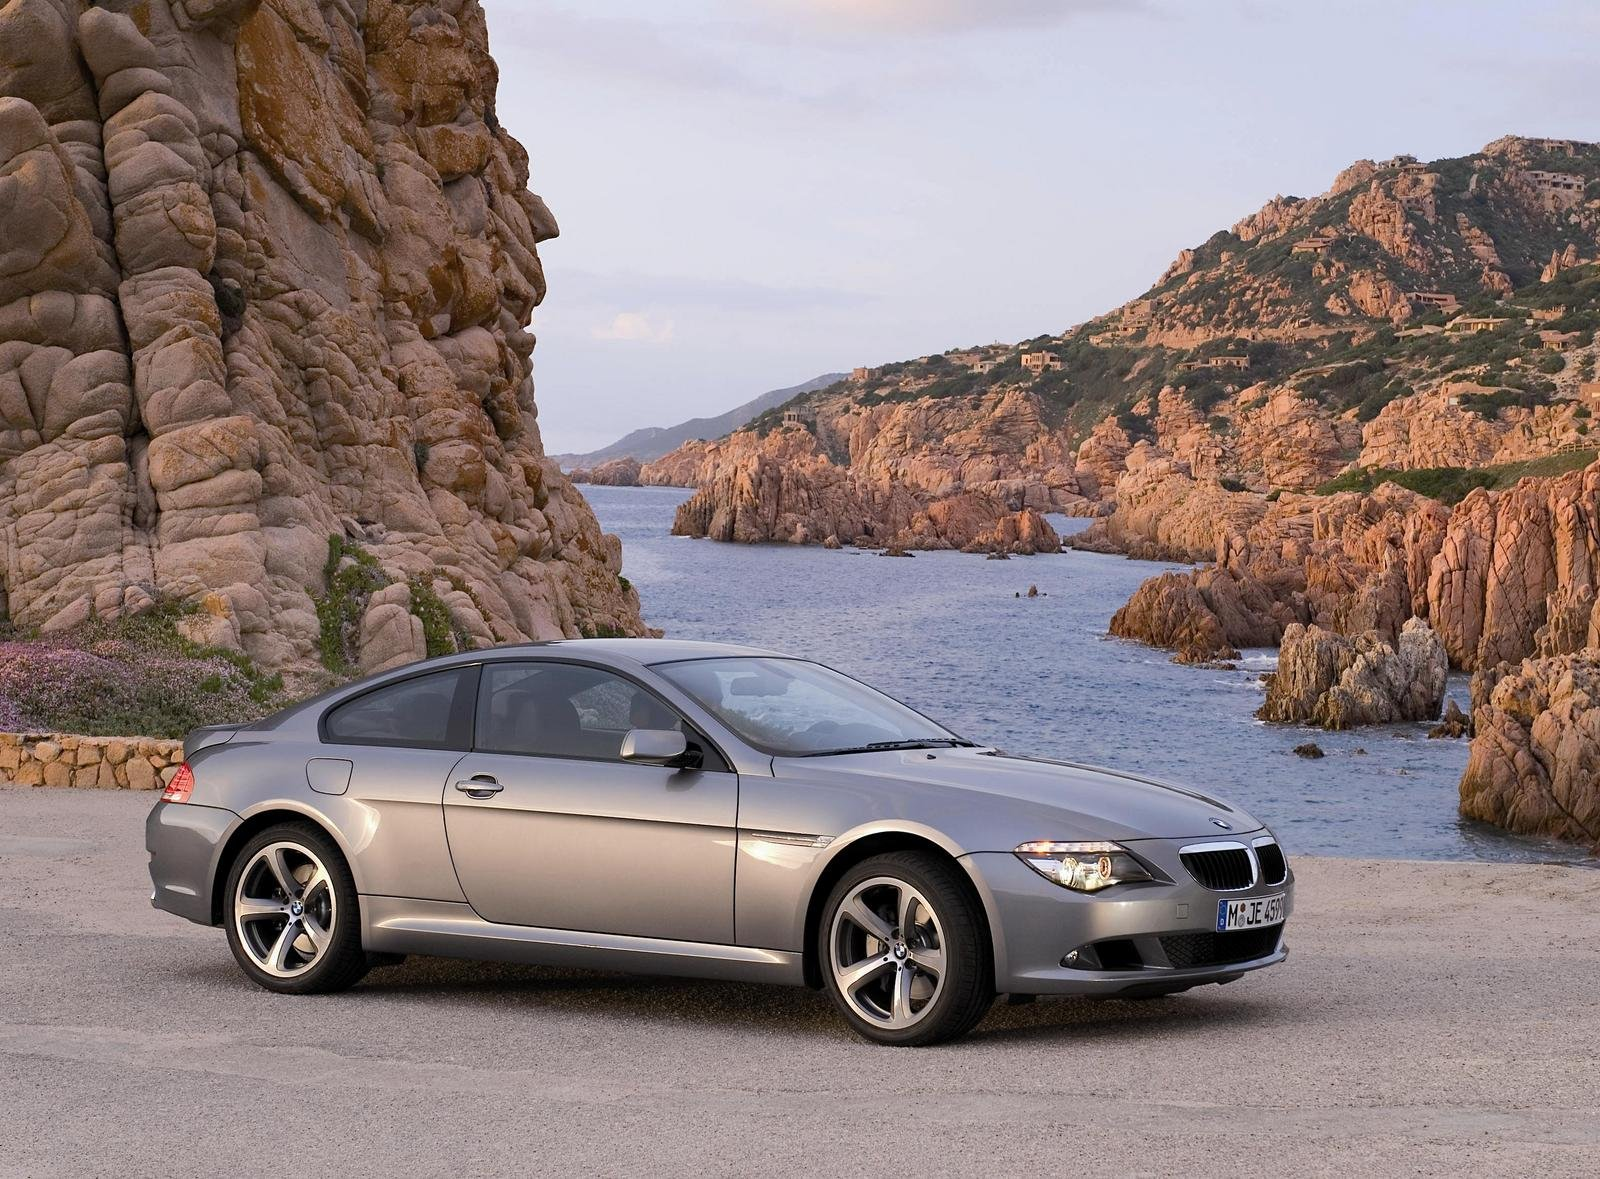 2008 bmw 635d picture 182280 car review top speed. Black Bedroom Furniture Sets. Home Design Ideas